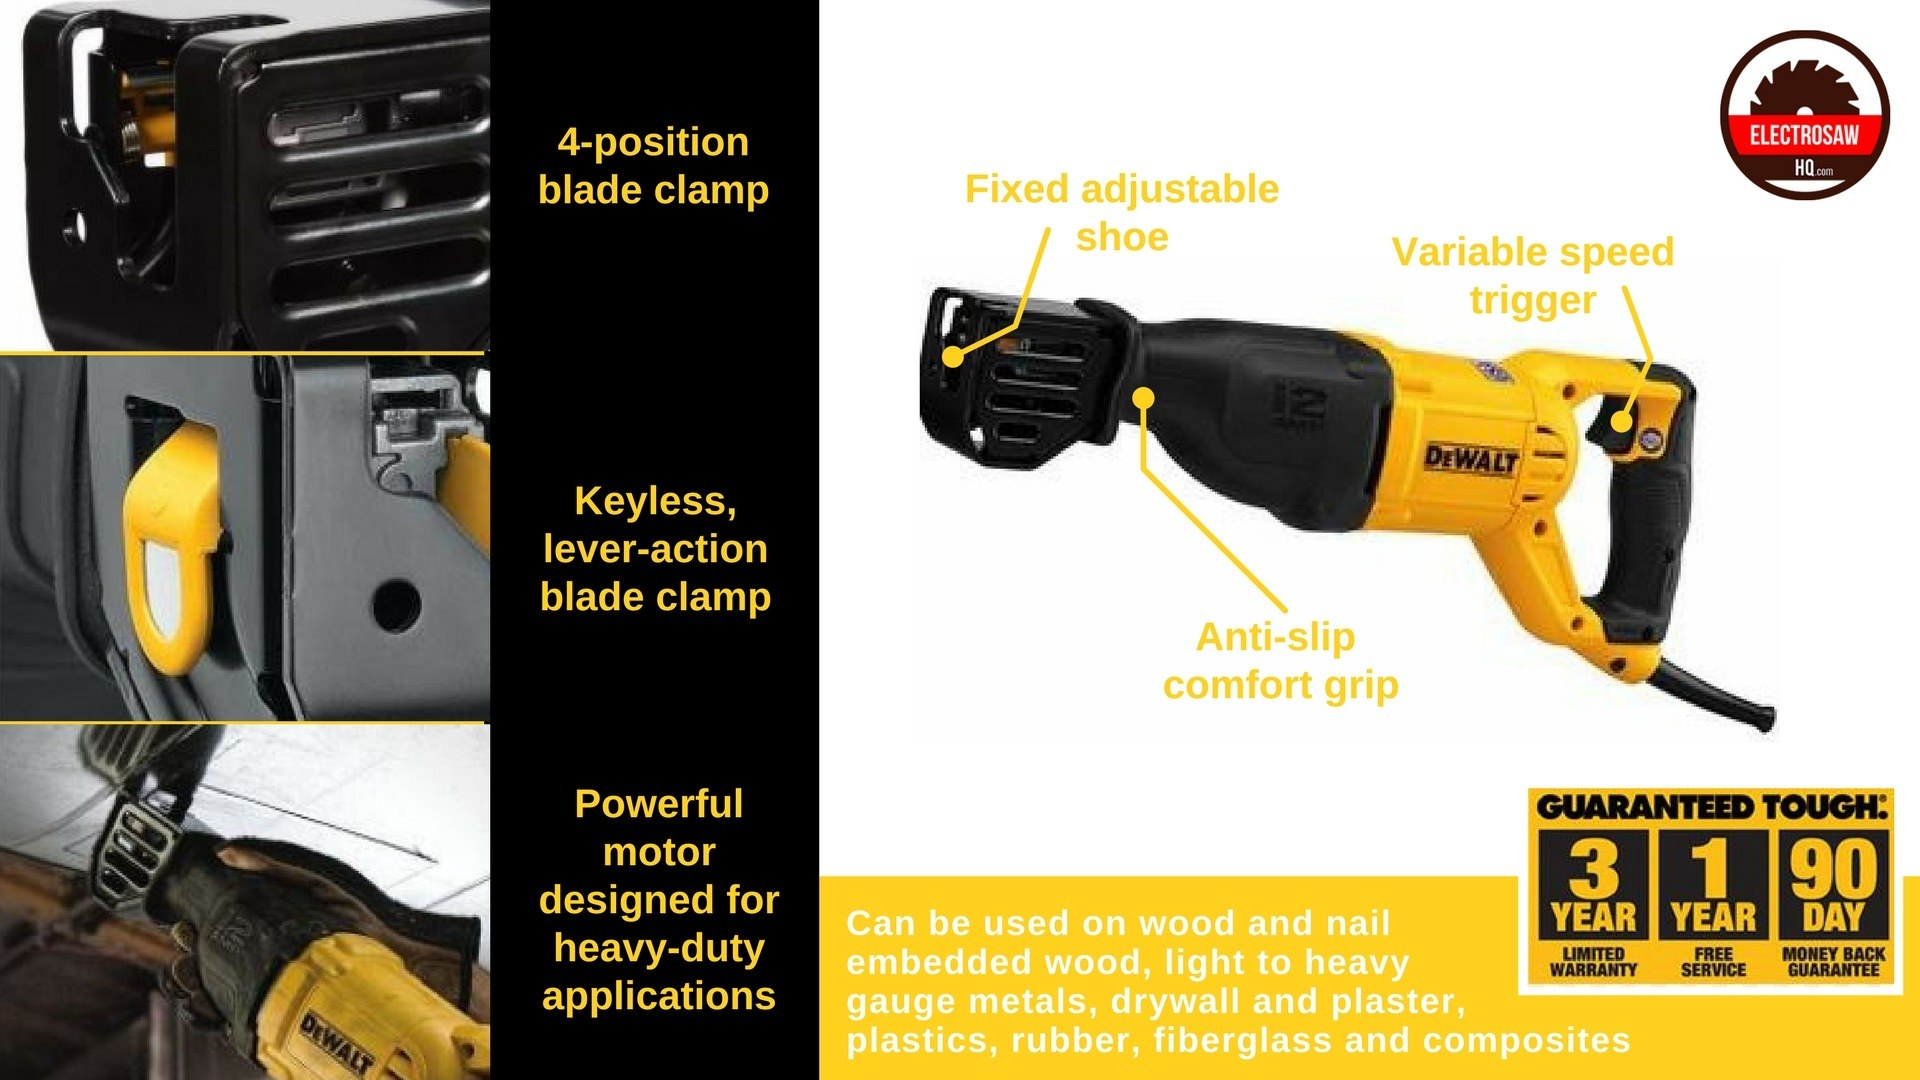 Dewalt dwe305 reciprocating saw just how good is it dewalt dwe305 review keyboard keysfo Gallery